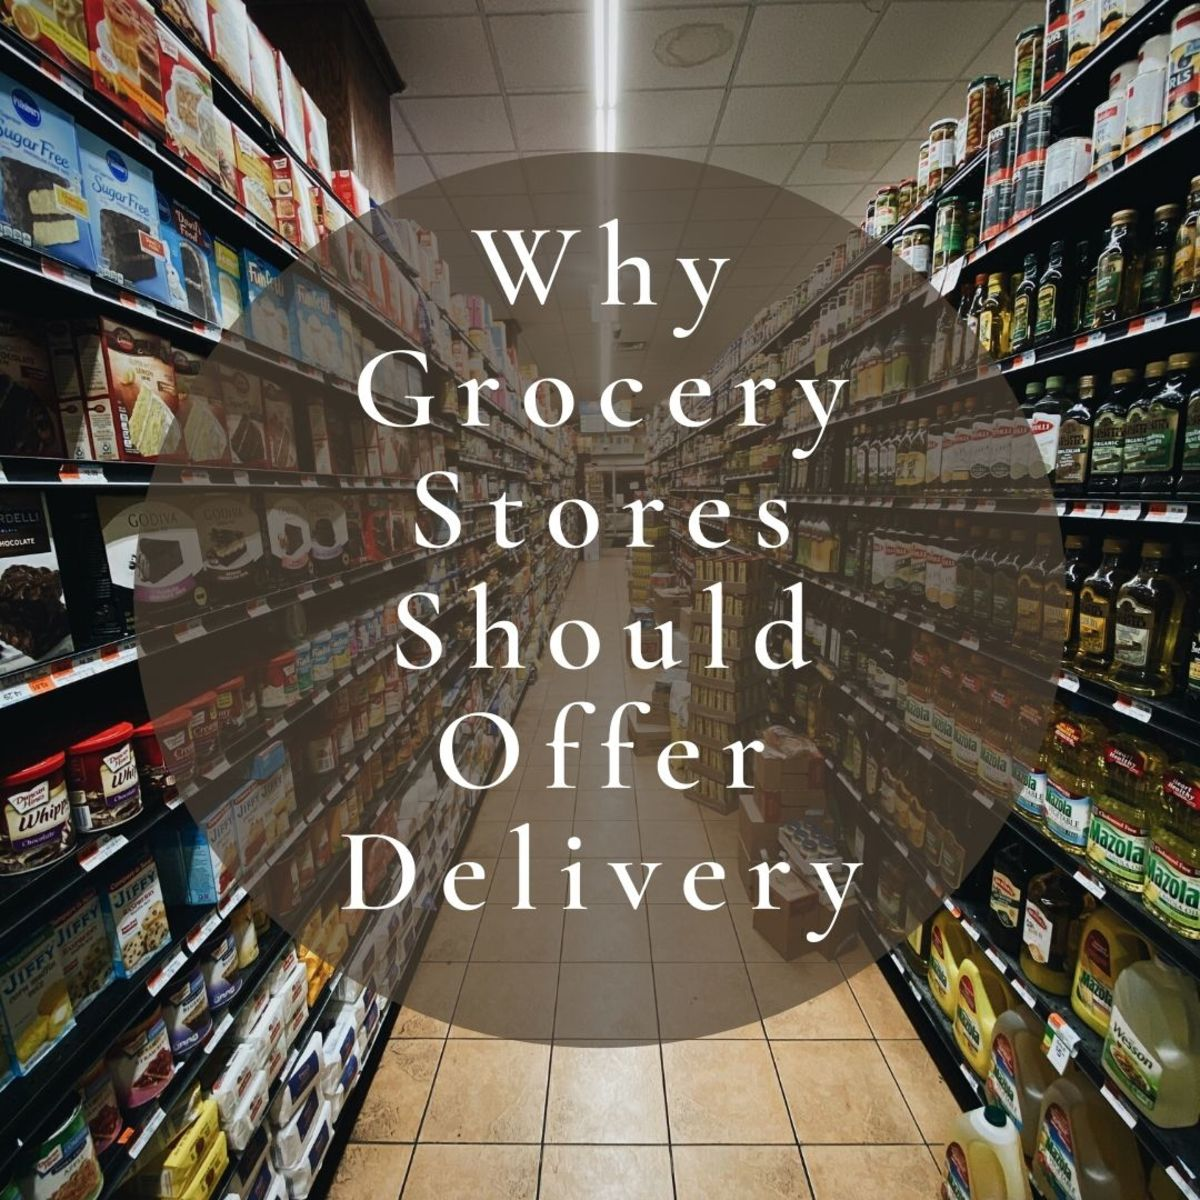 Grocery store delivery services can be really useful to people who are unable to go to the store to shop for themselves.